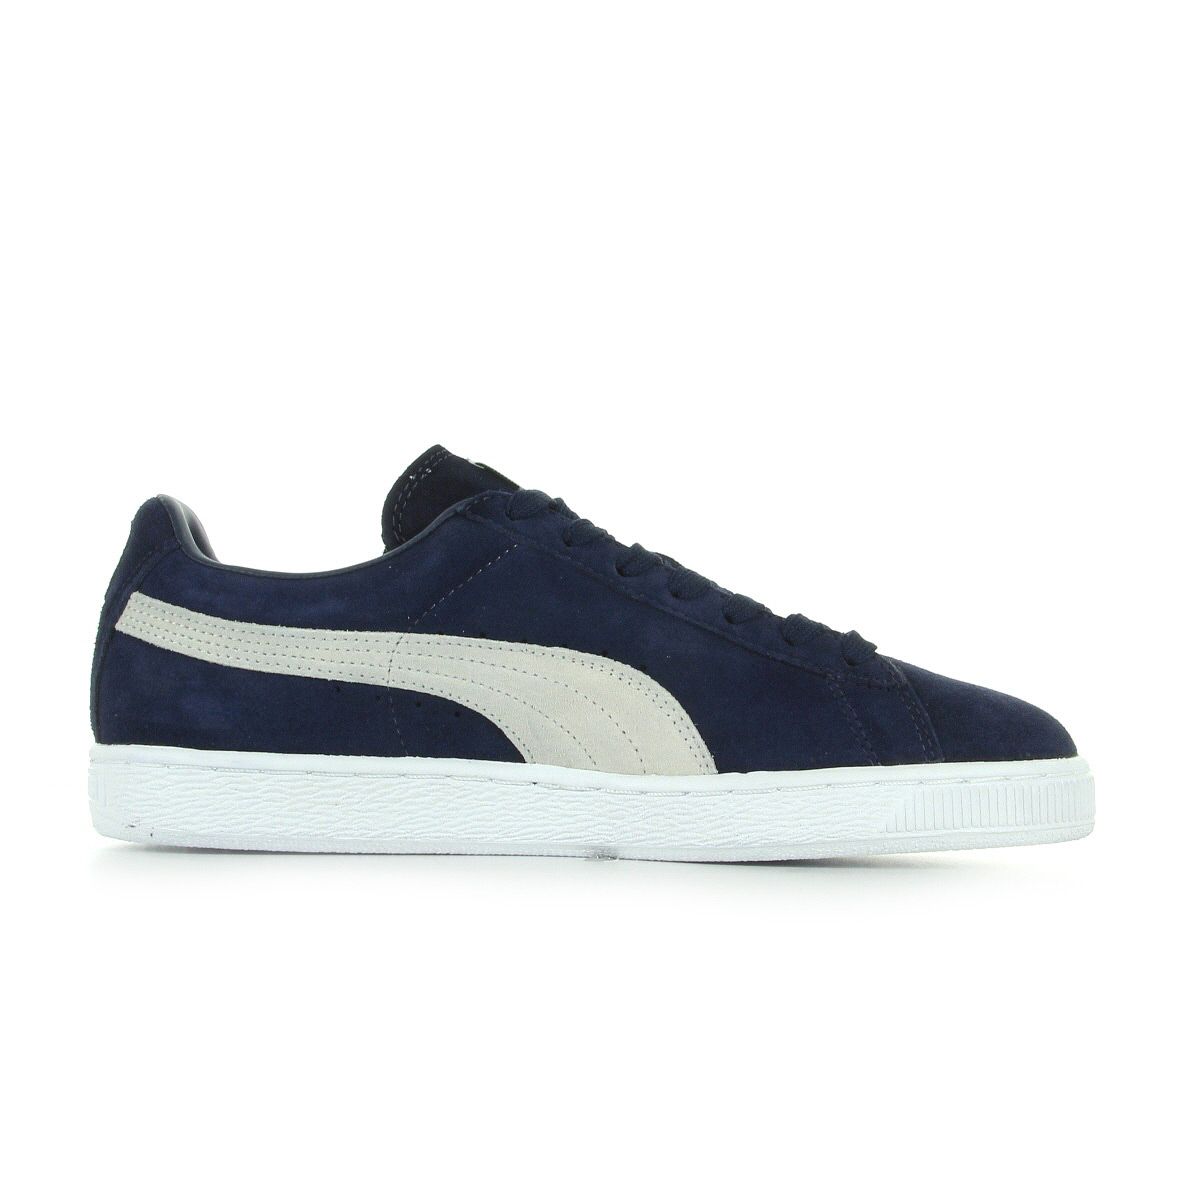 Puma Suede Classic + 35656851, Baskets mode homme